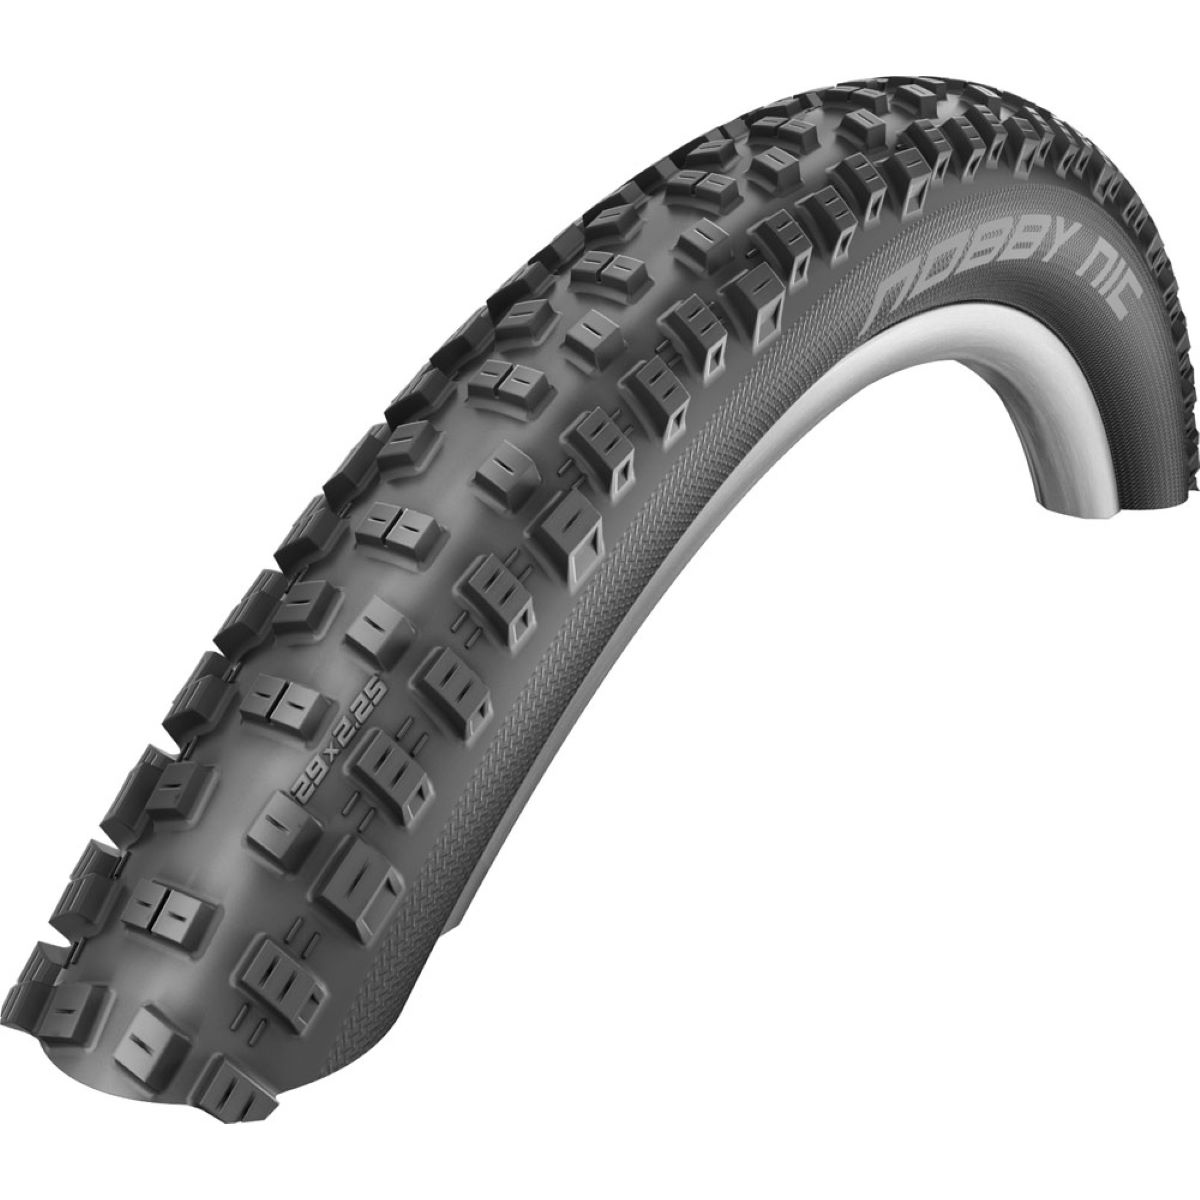 Pneu Schwalbe Nobby Nic Performance Dual Compound 29 pouces - Noir